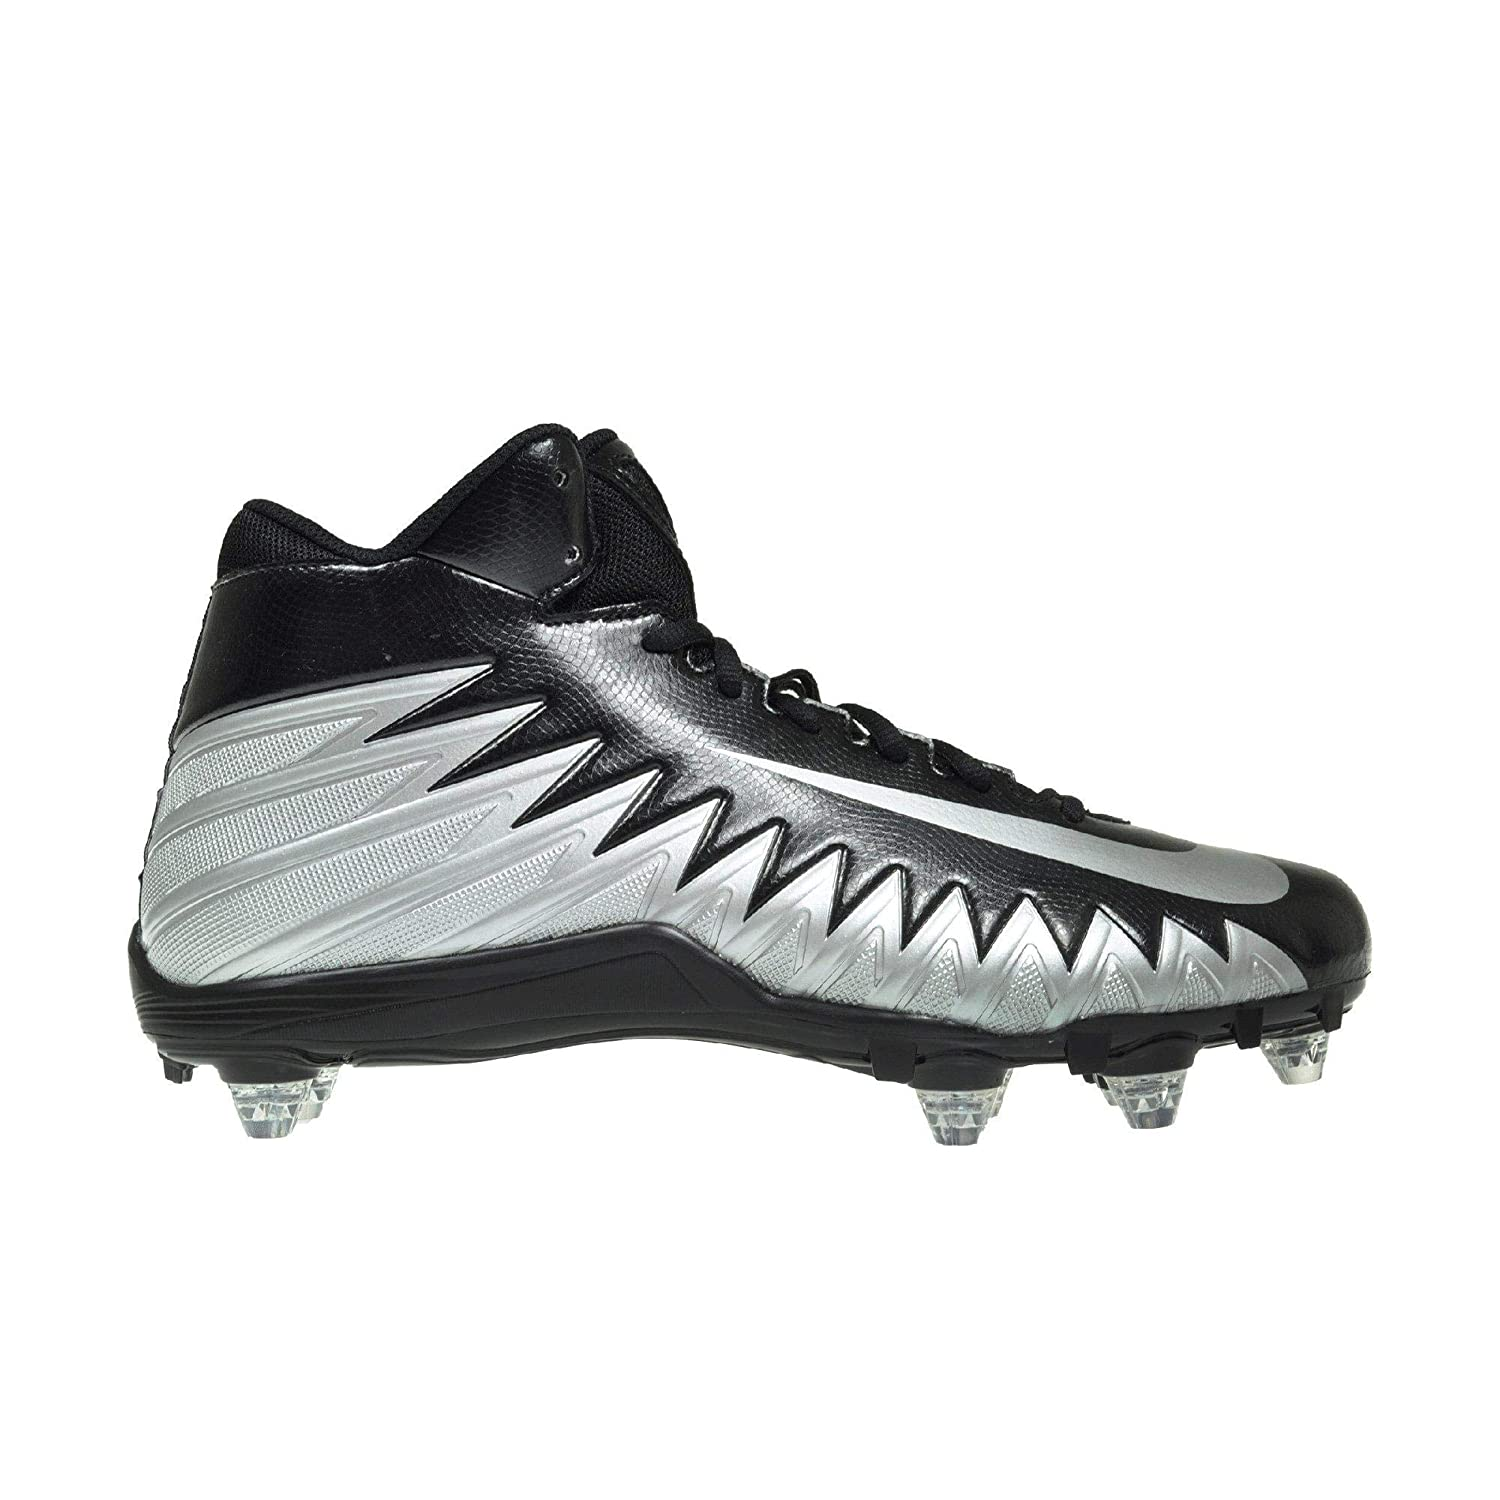 7df596625 Amazon.com  NIKE Men s Alpha Menace Varsity Mid D Football Cleats ...